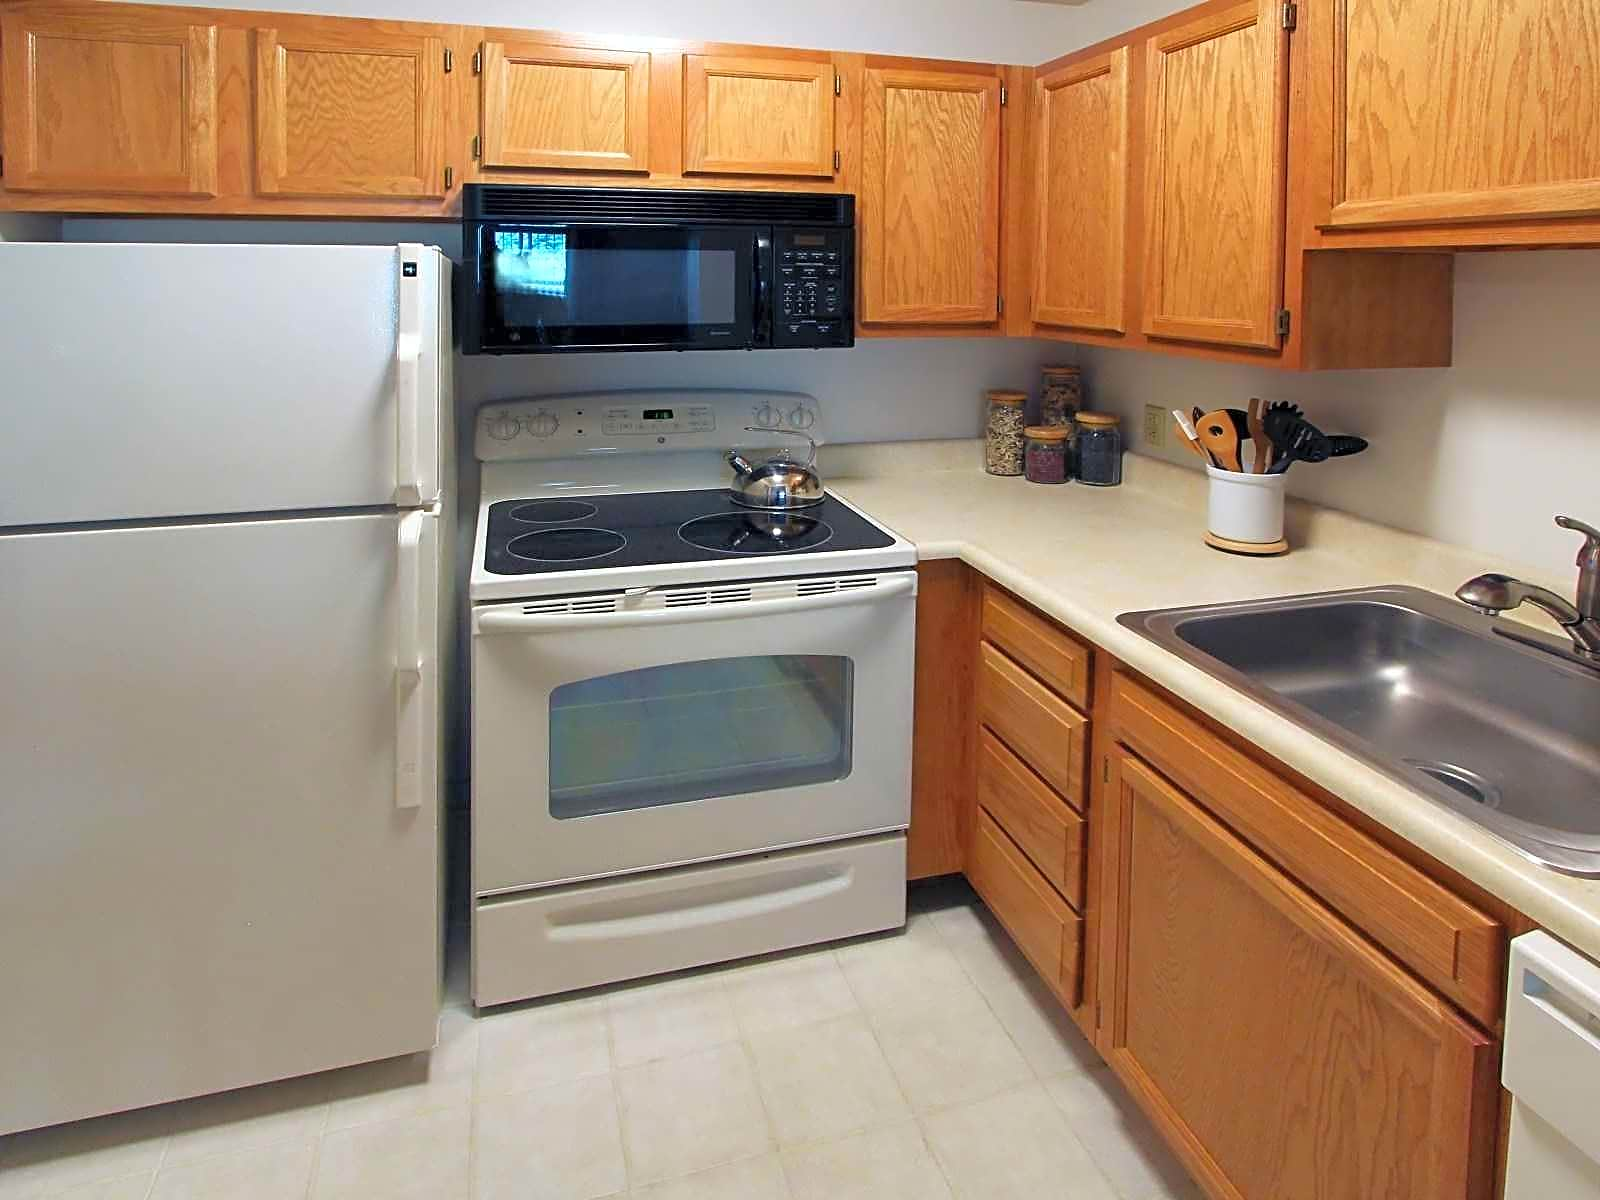 Apartments Near Siena Towne Towers for Siena College Students in Loudonville, NY